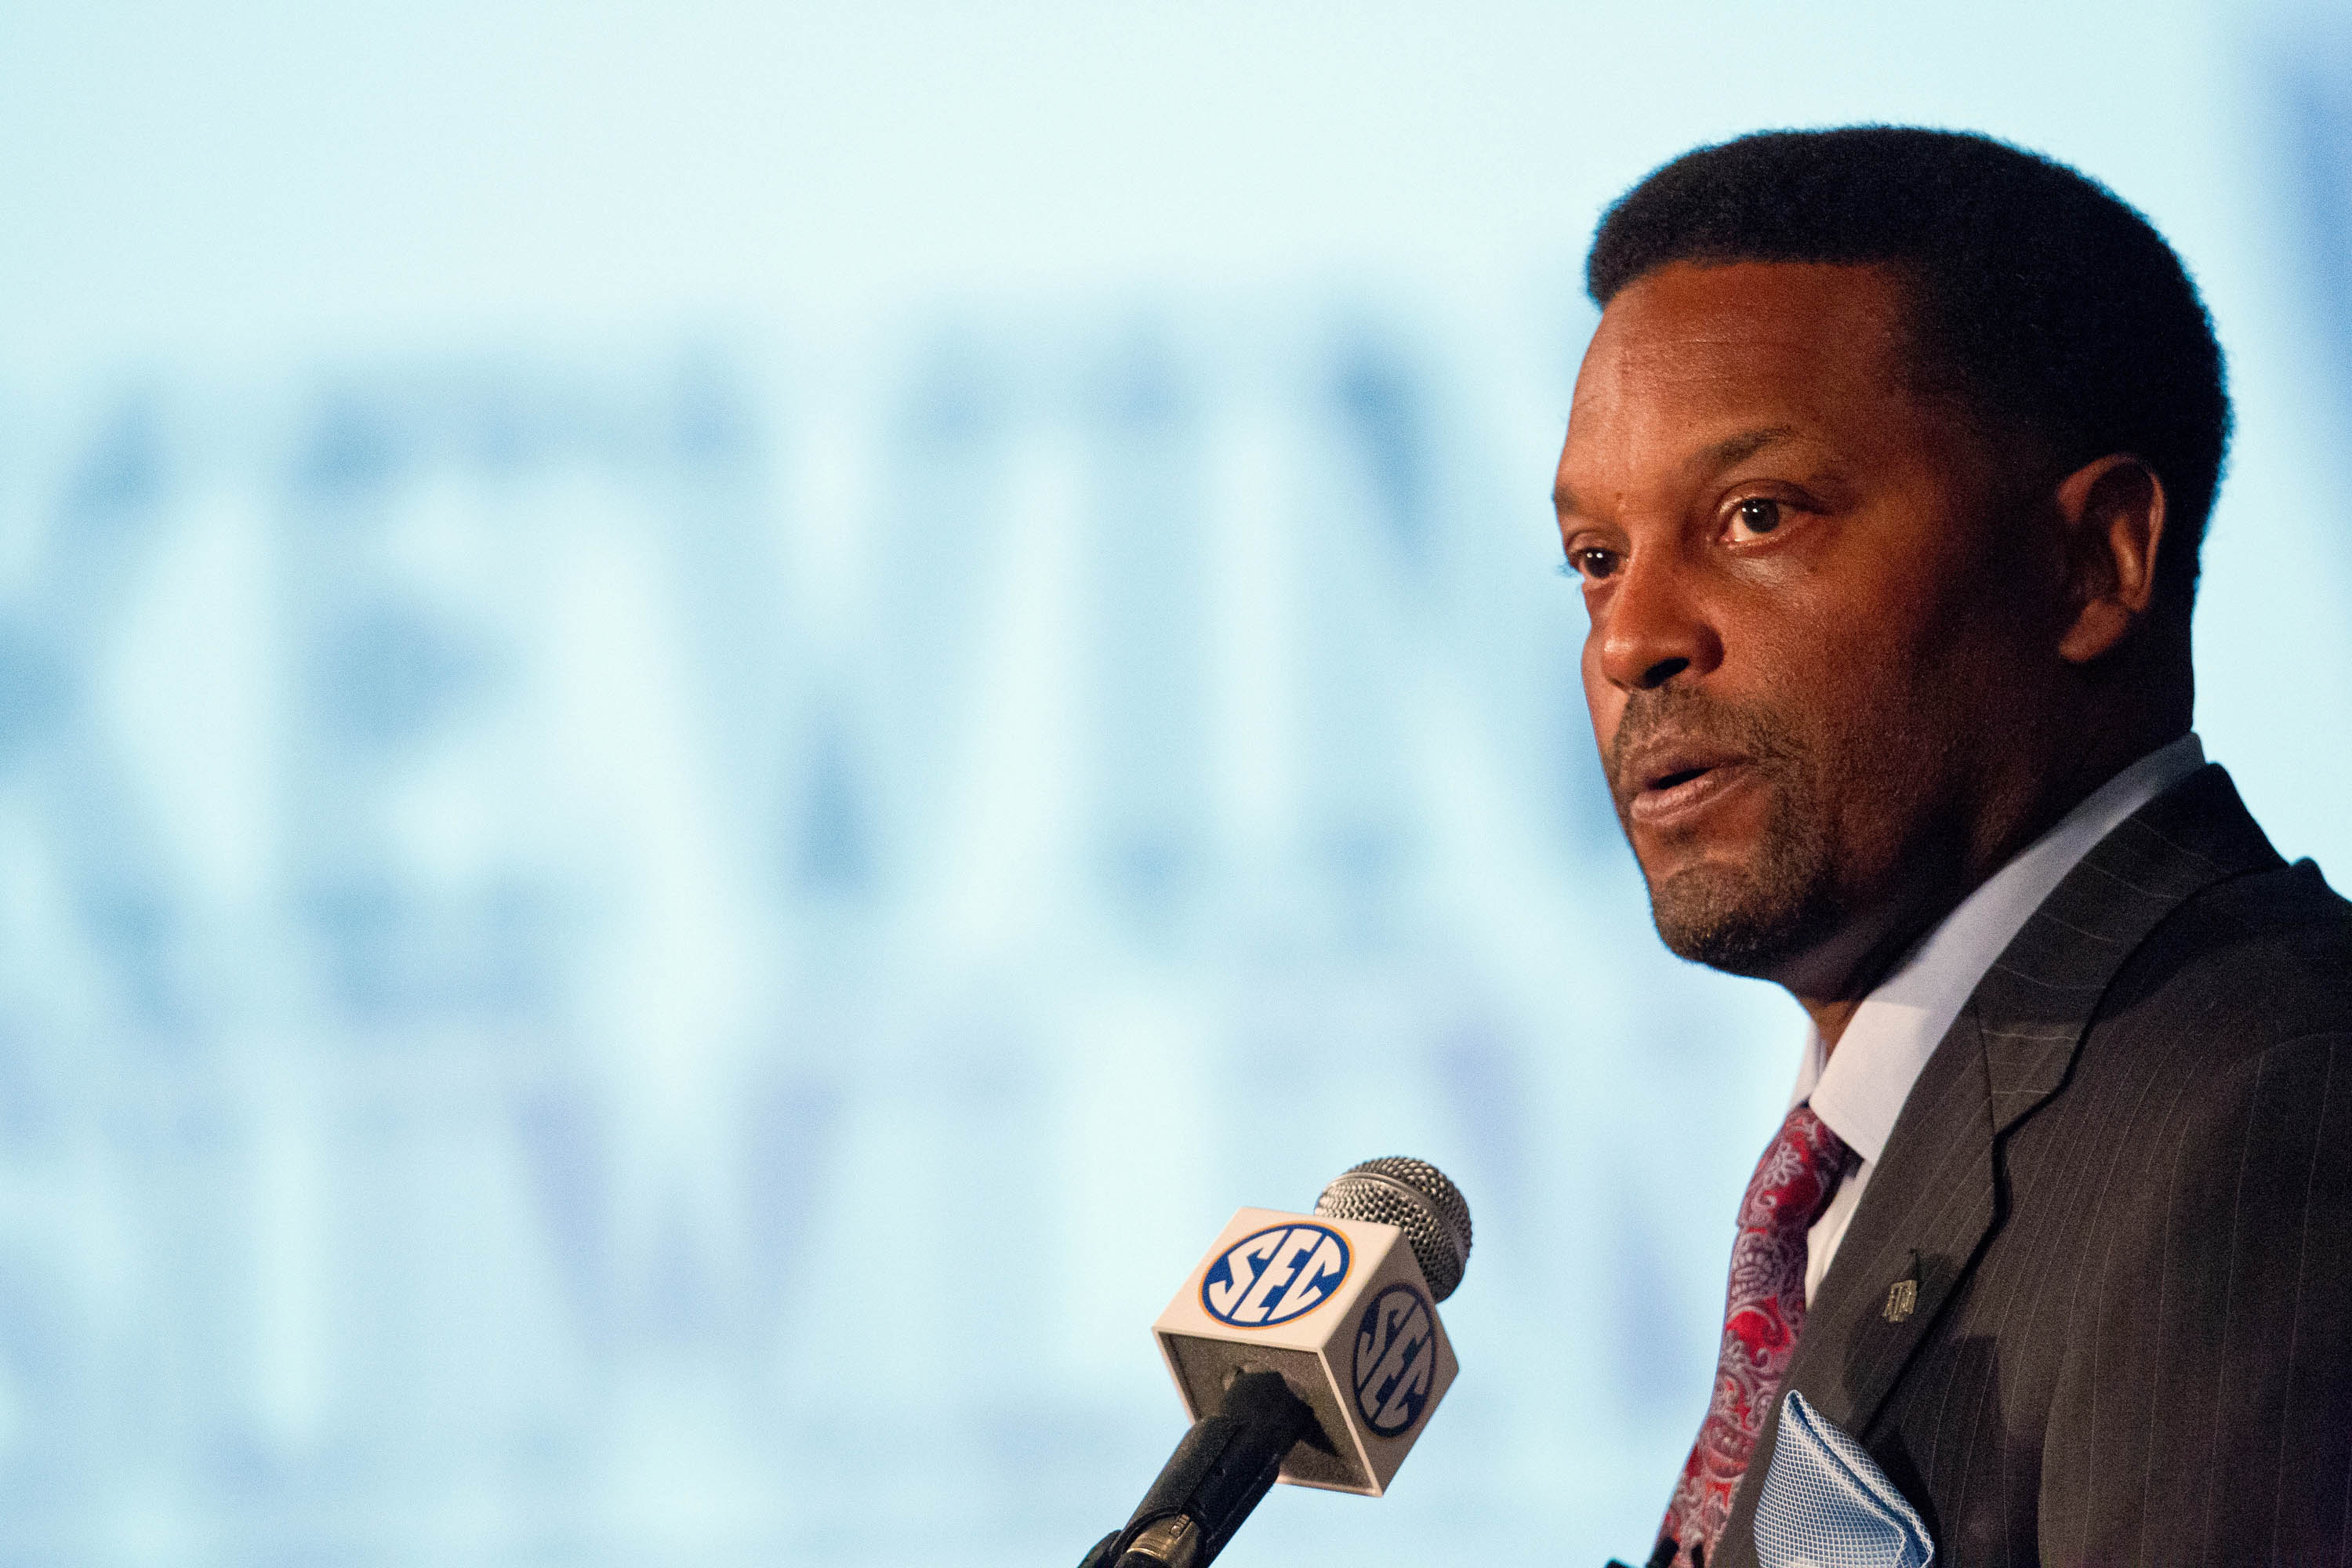 Kevin Sumlin on life after Johnny Manziel